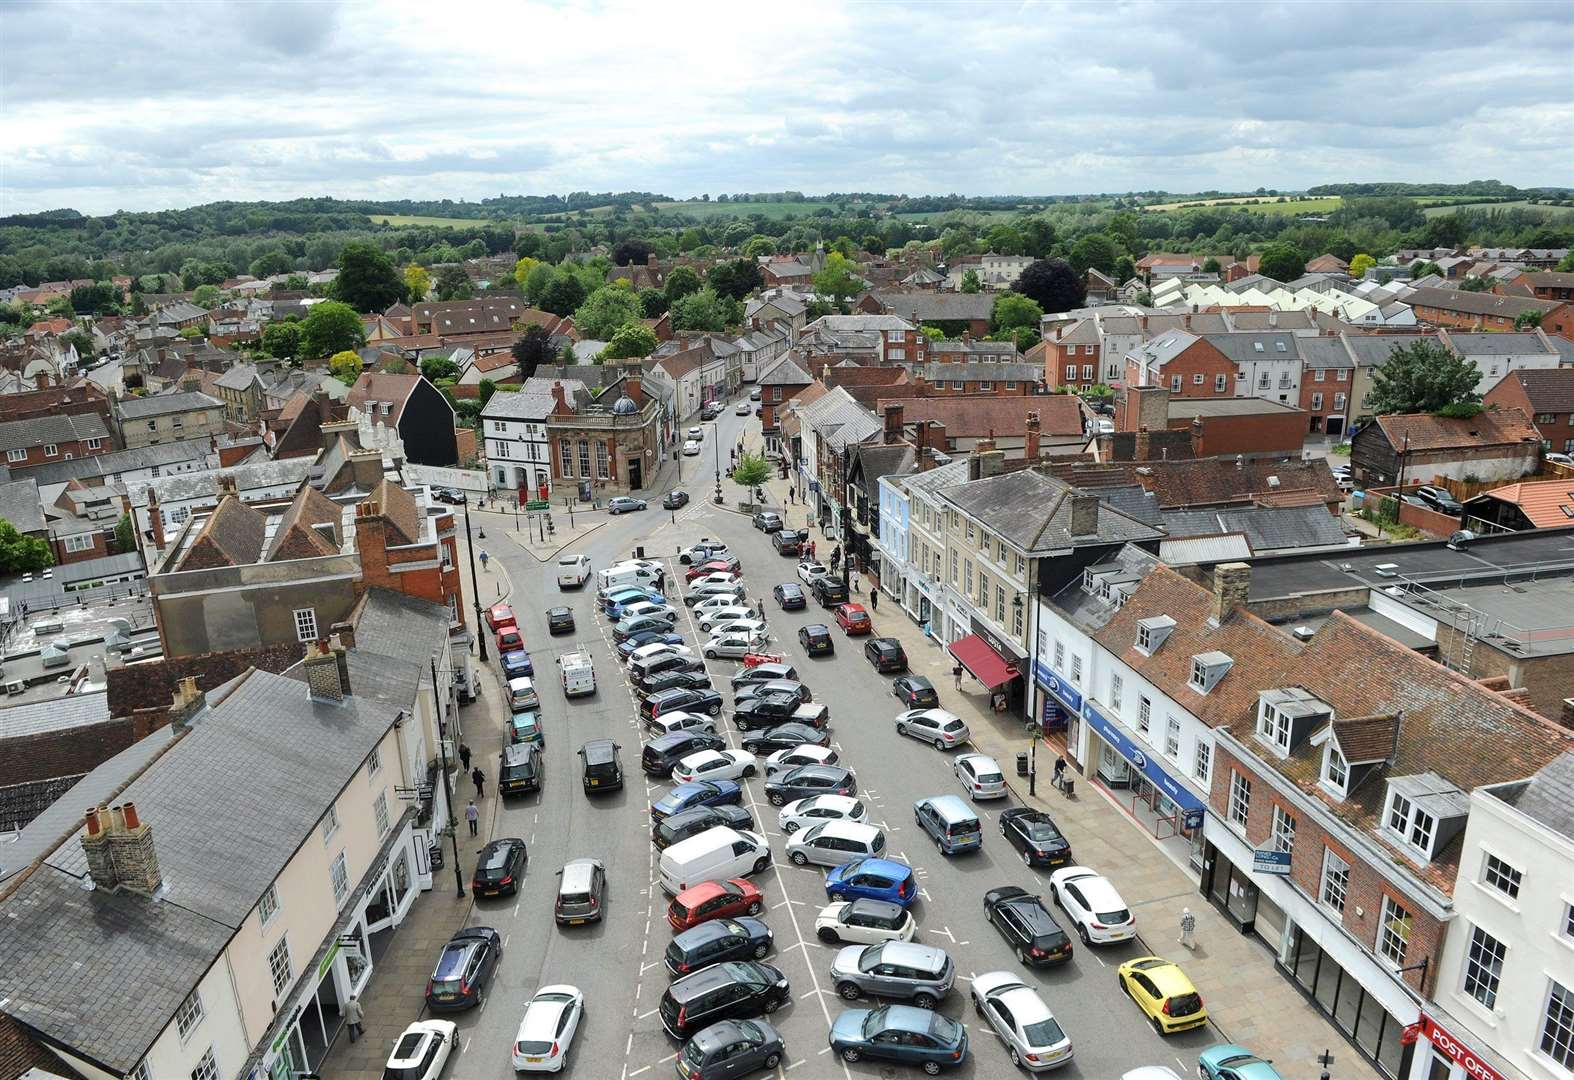 Babergh council commits to supporting Sudbury after failed bid for Government funding